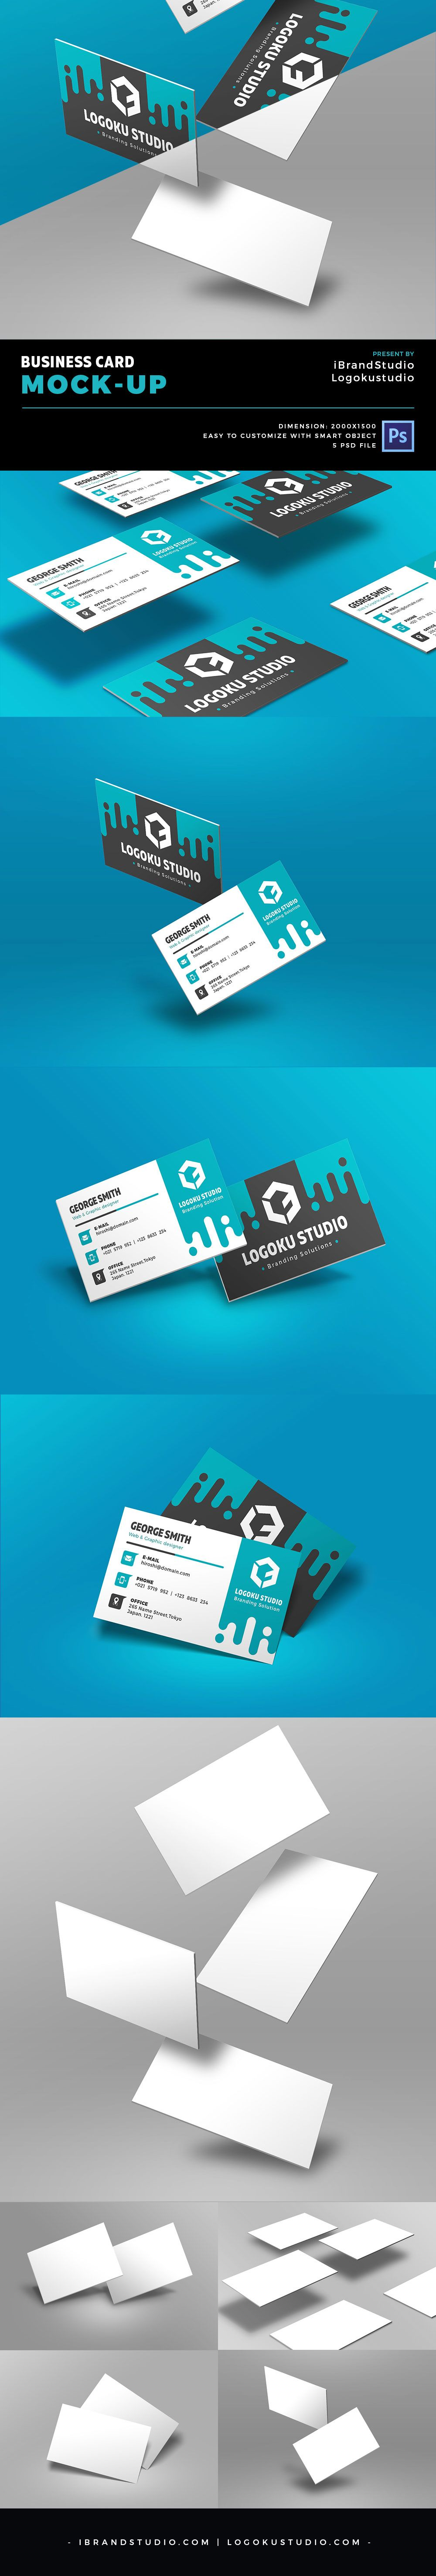 Free floating business card mockup 5 scenes psd pinterest free floating business card mockup reheart Images